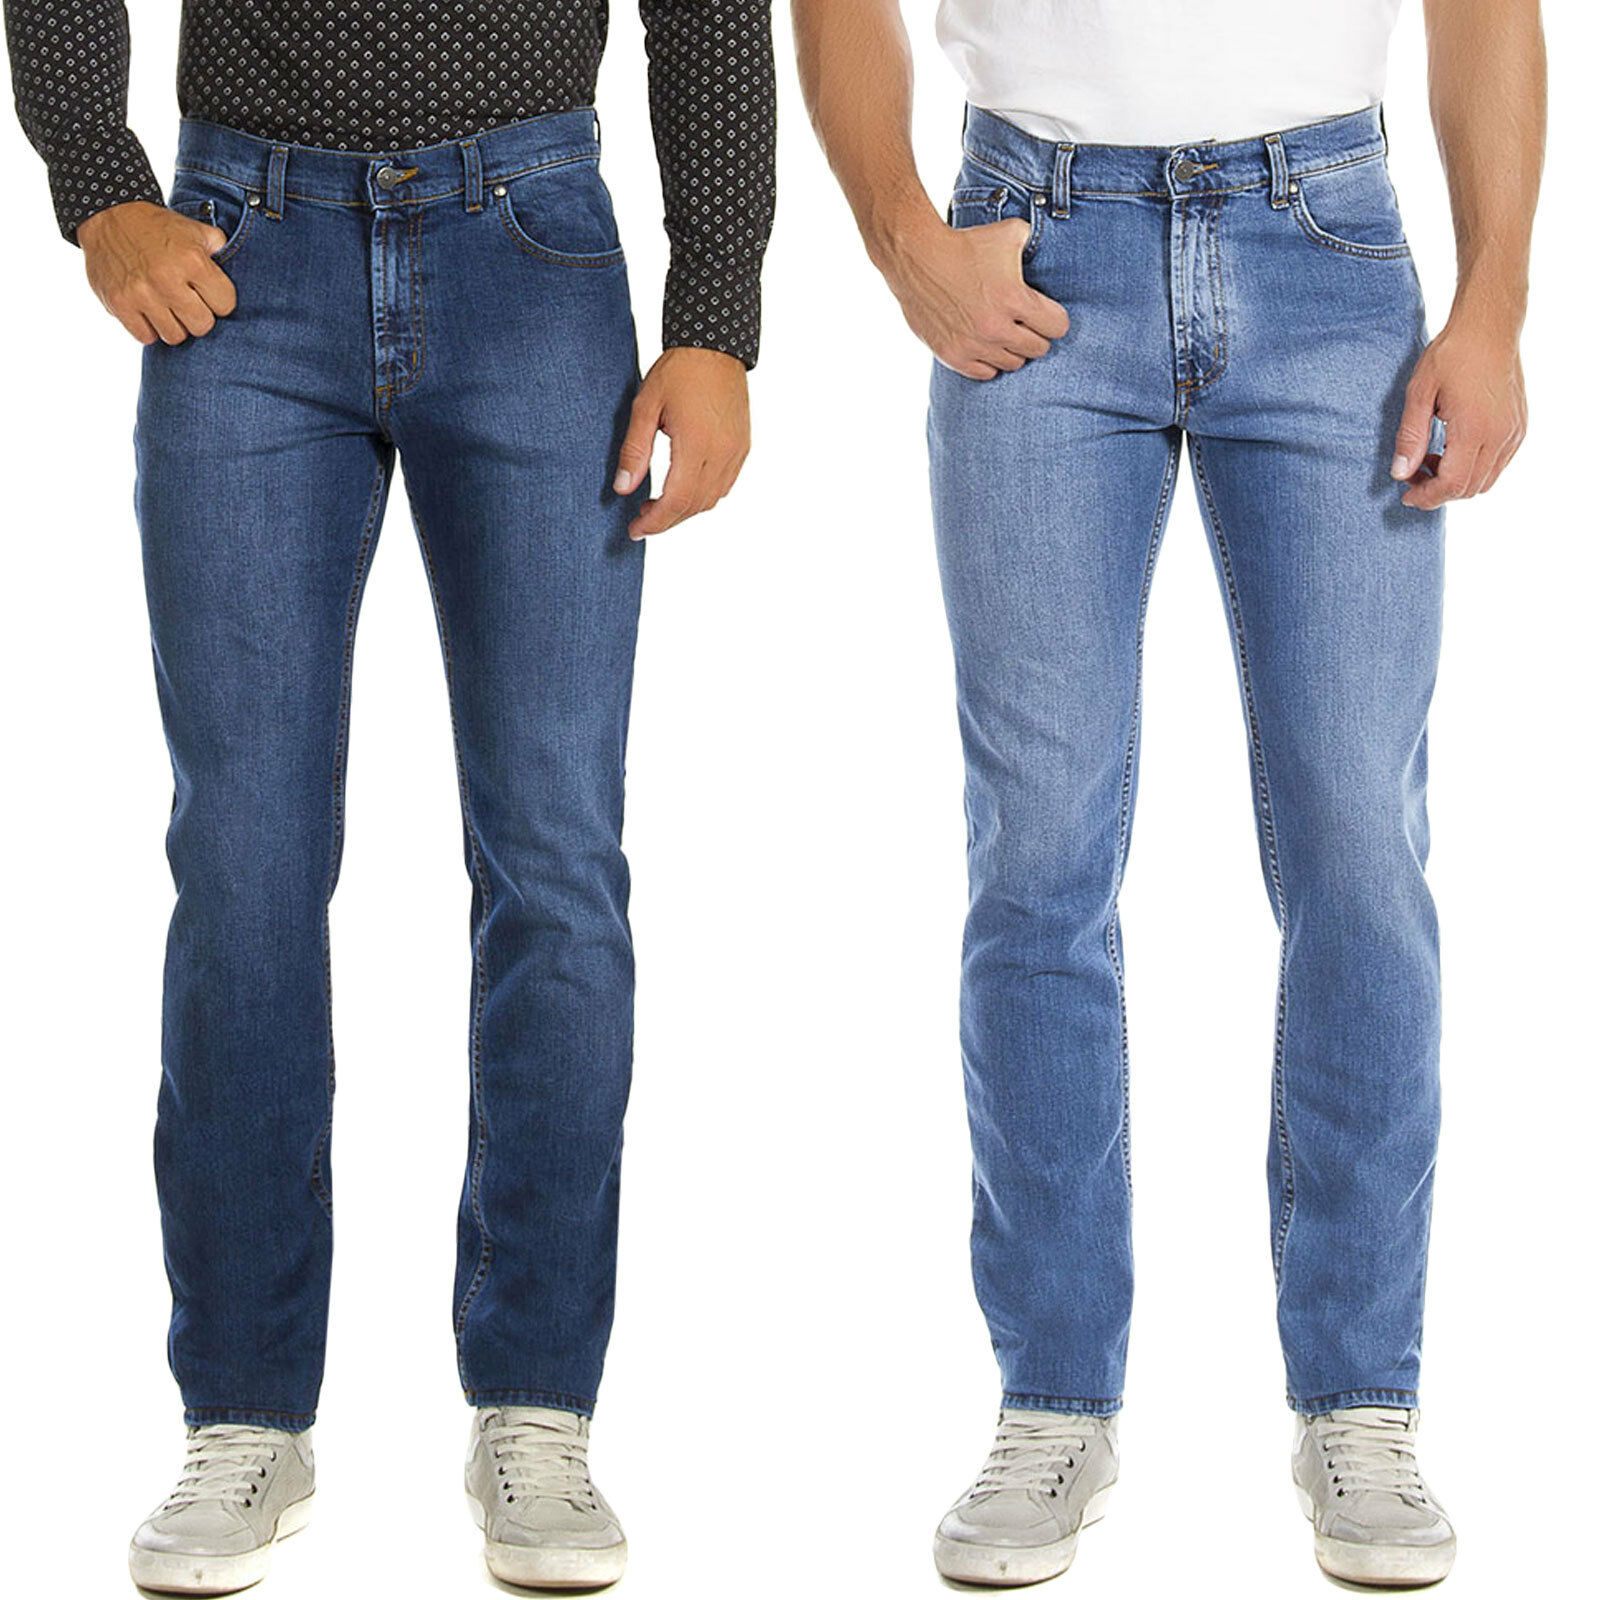 size 40 c00d7 e48f9 Details about Carrera Men's Jeans Elasticated Trousers Denim Stretch  Regular Fit 700-921s